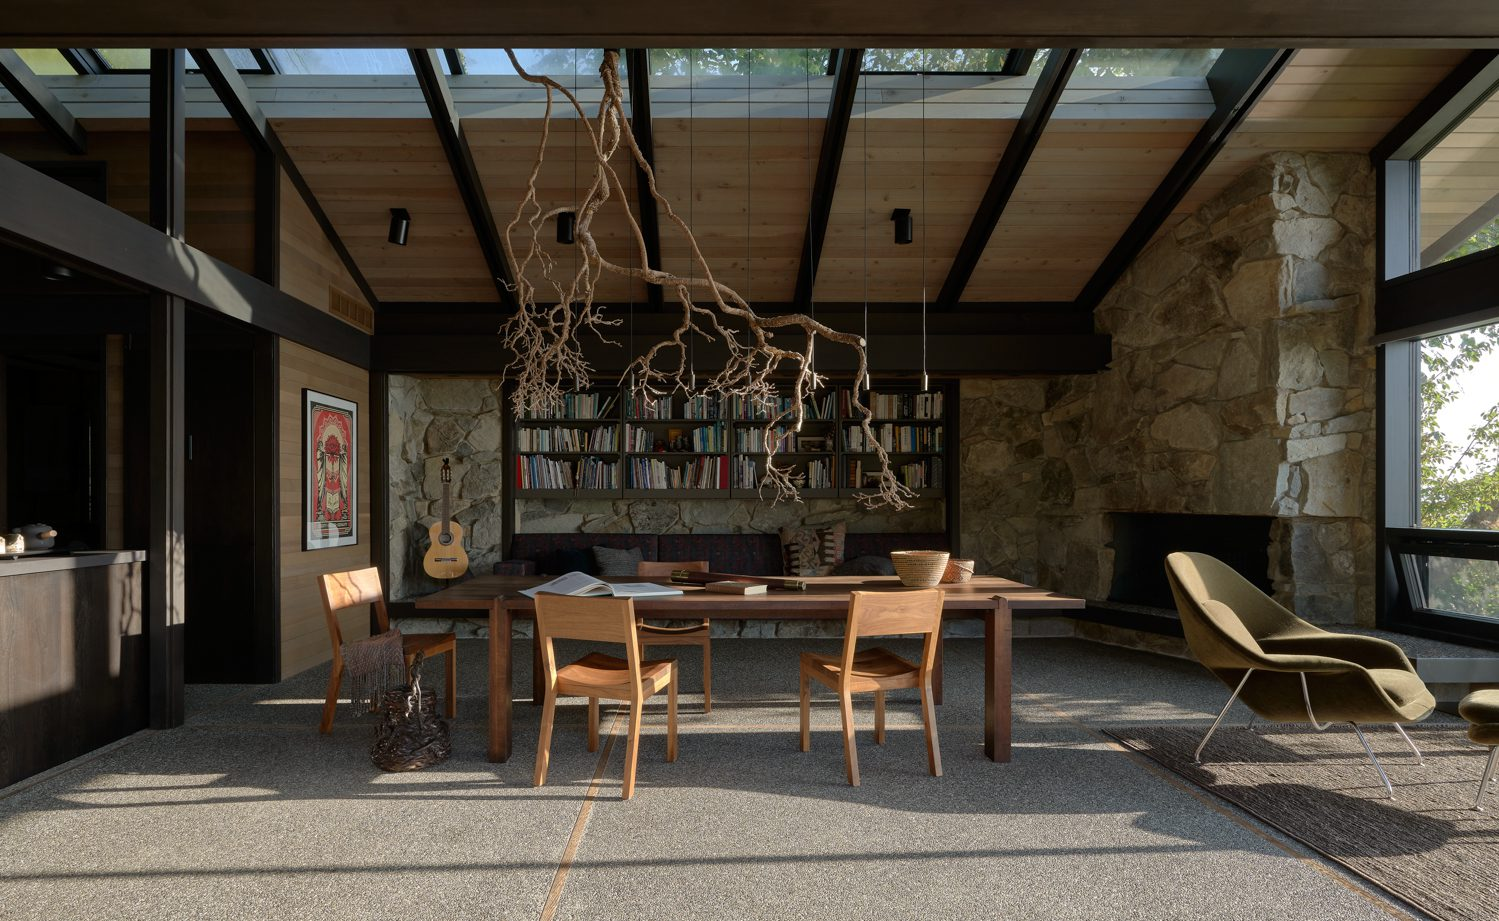 The dining table with skylights overhead.